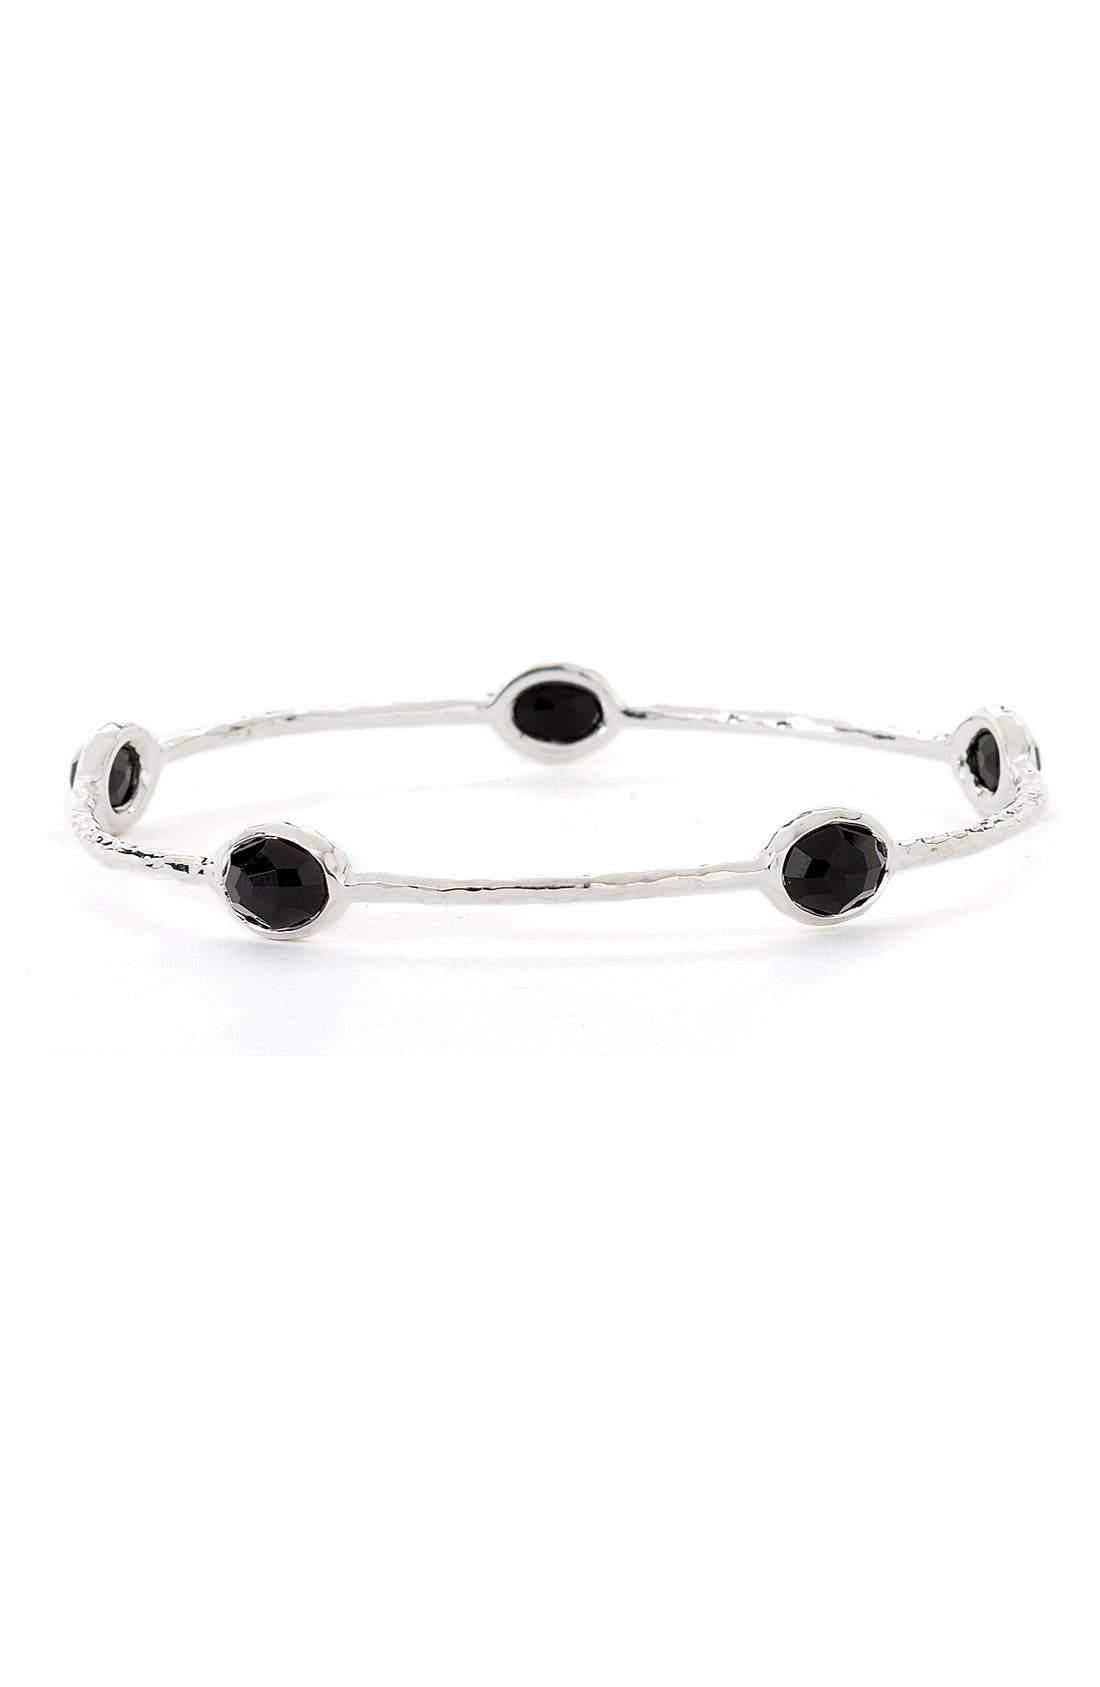 'Rock Candy' 5-Stone Sterling Silver Bangle,                         Main,                         color, Silver - Black Onyx